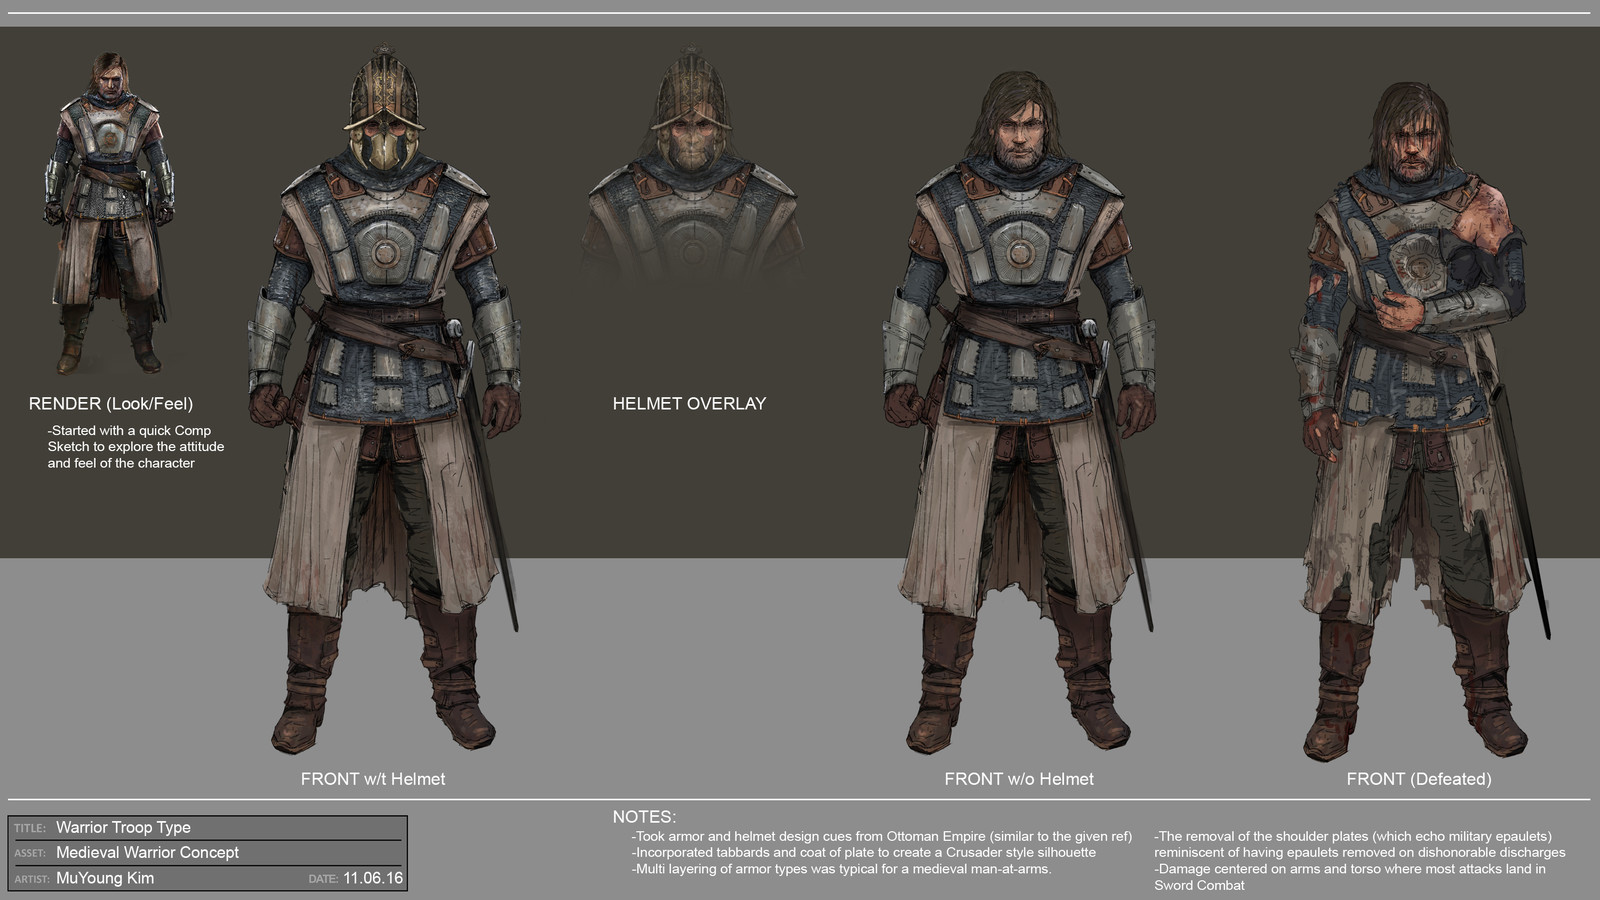 Warrior Troop Concept